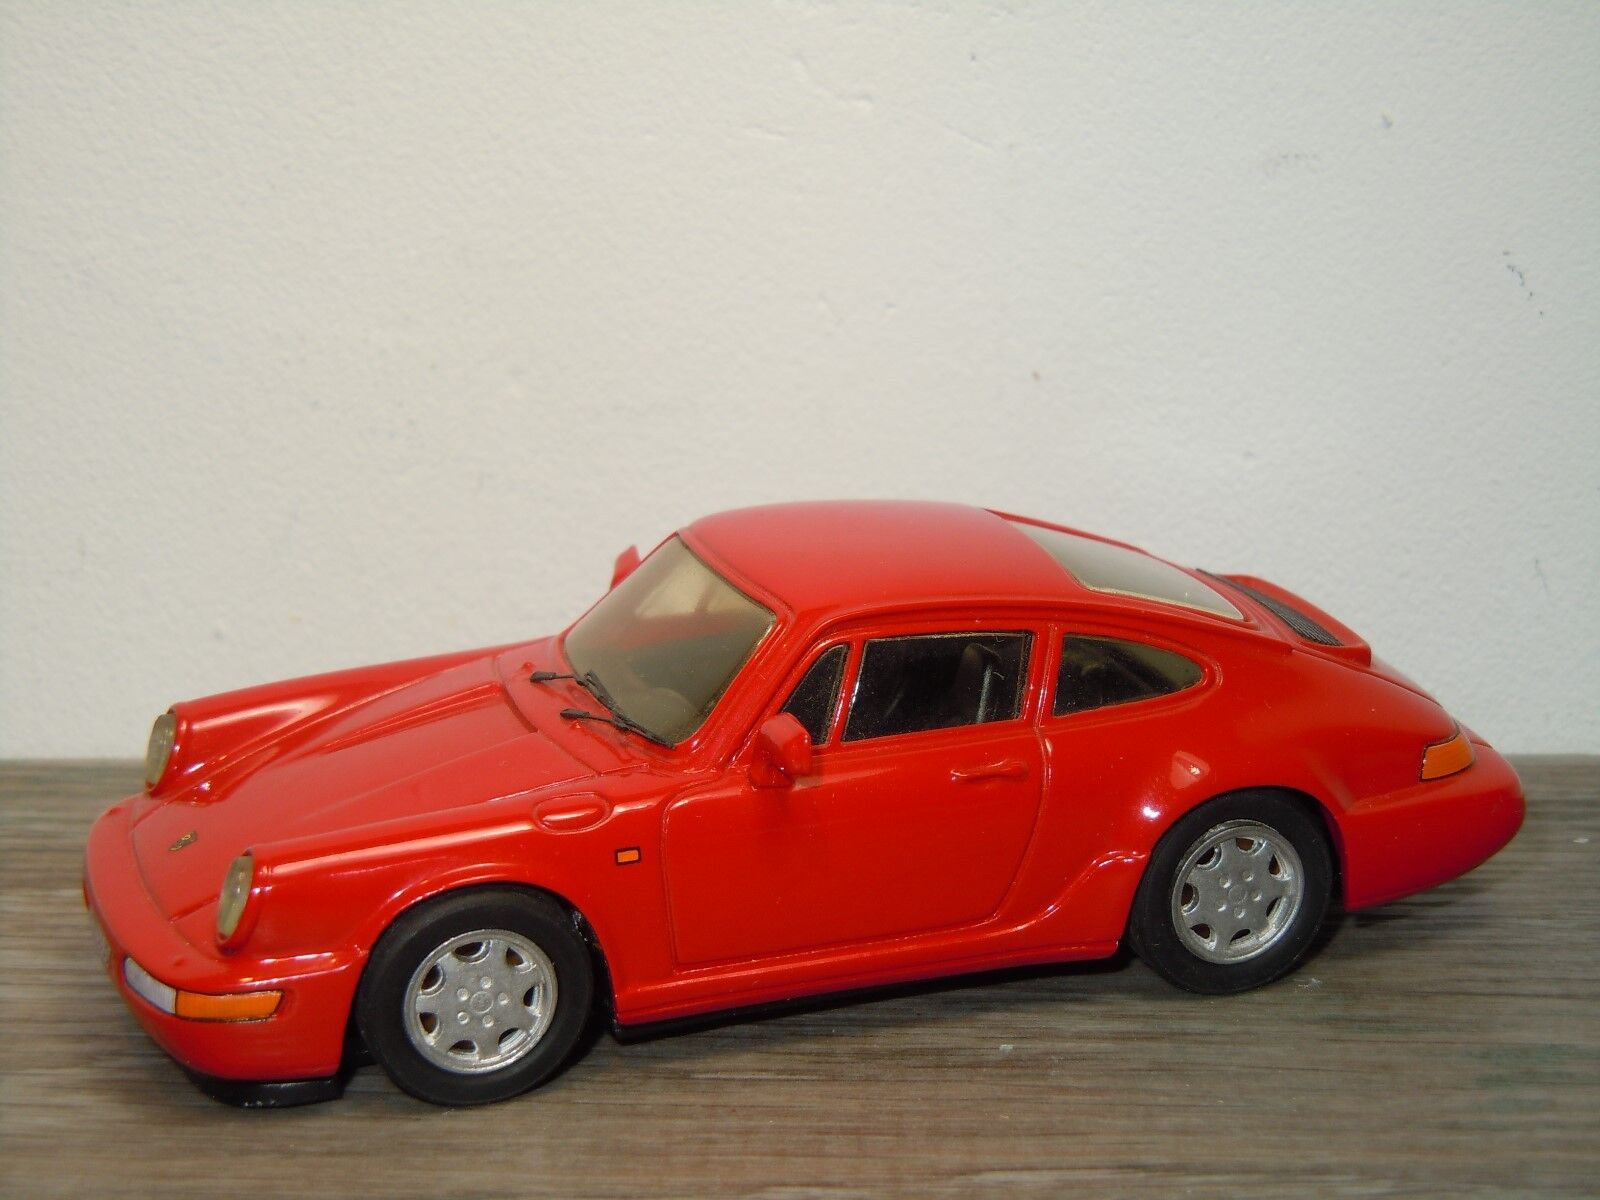 Porsche 911 Carrera 4 Coupe 1989 - Century 18 France 1 43 34833